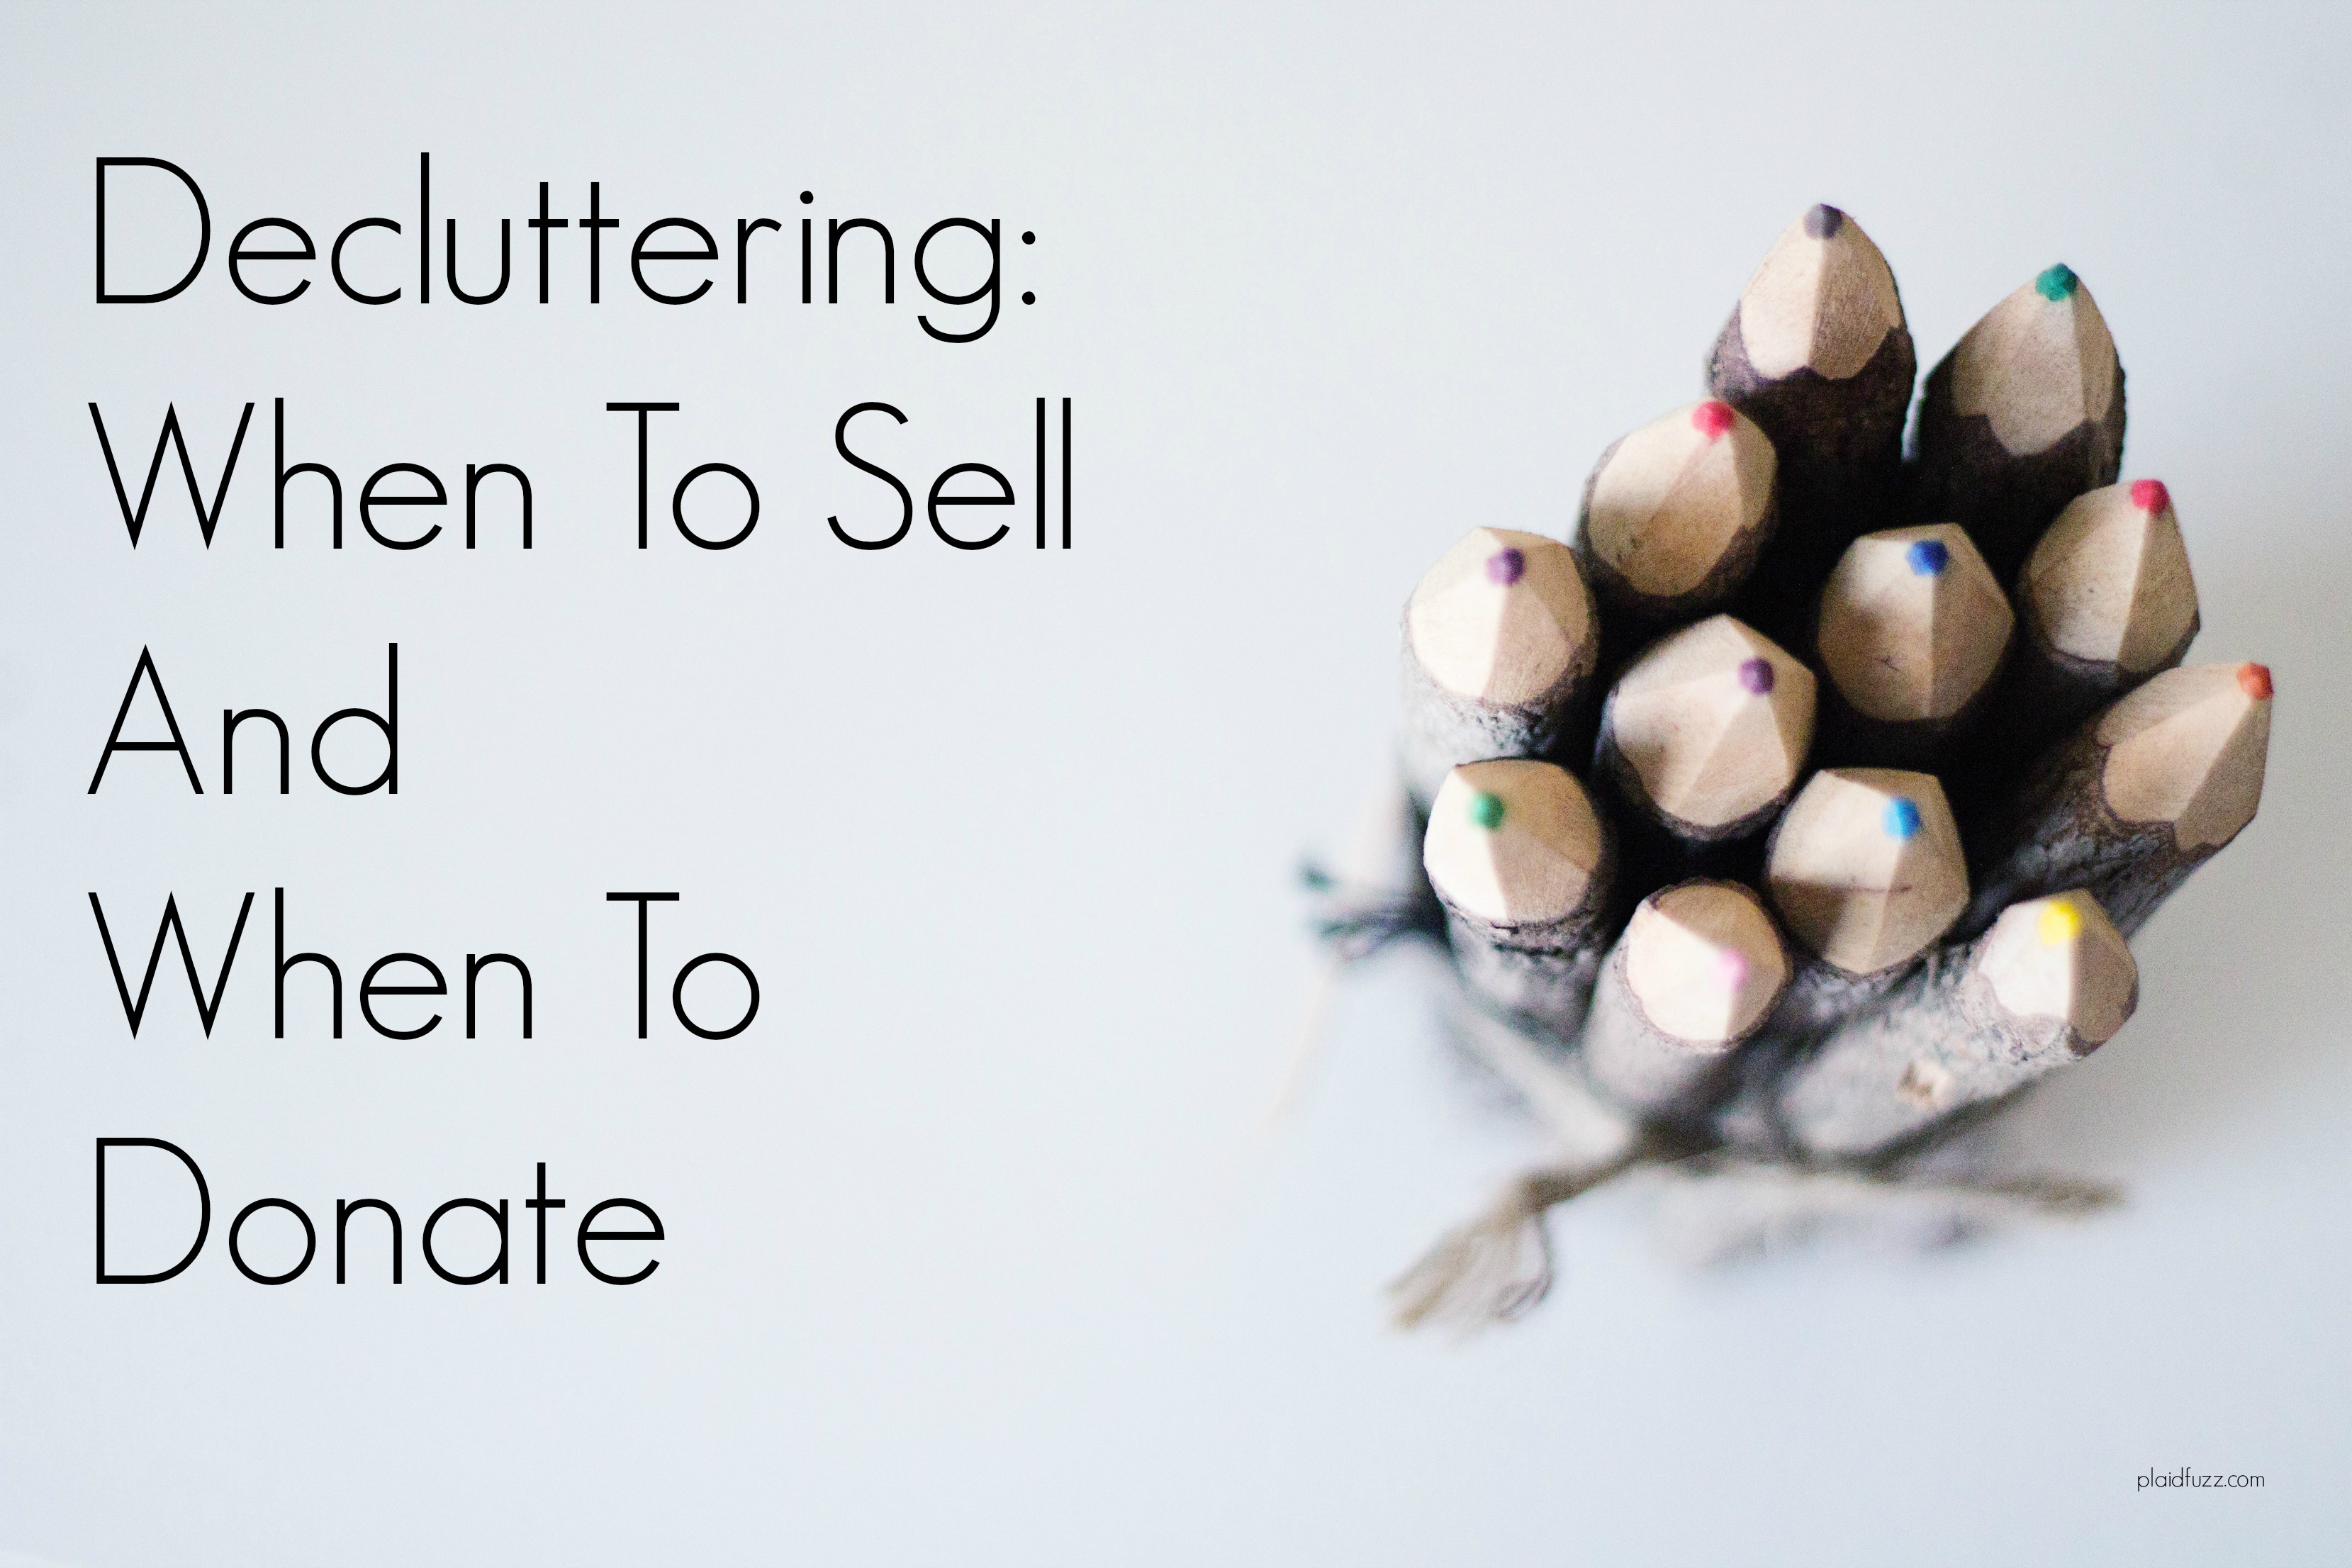 Decluttering: When To Sell and When to Donate